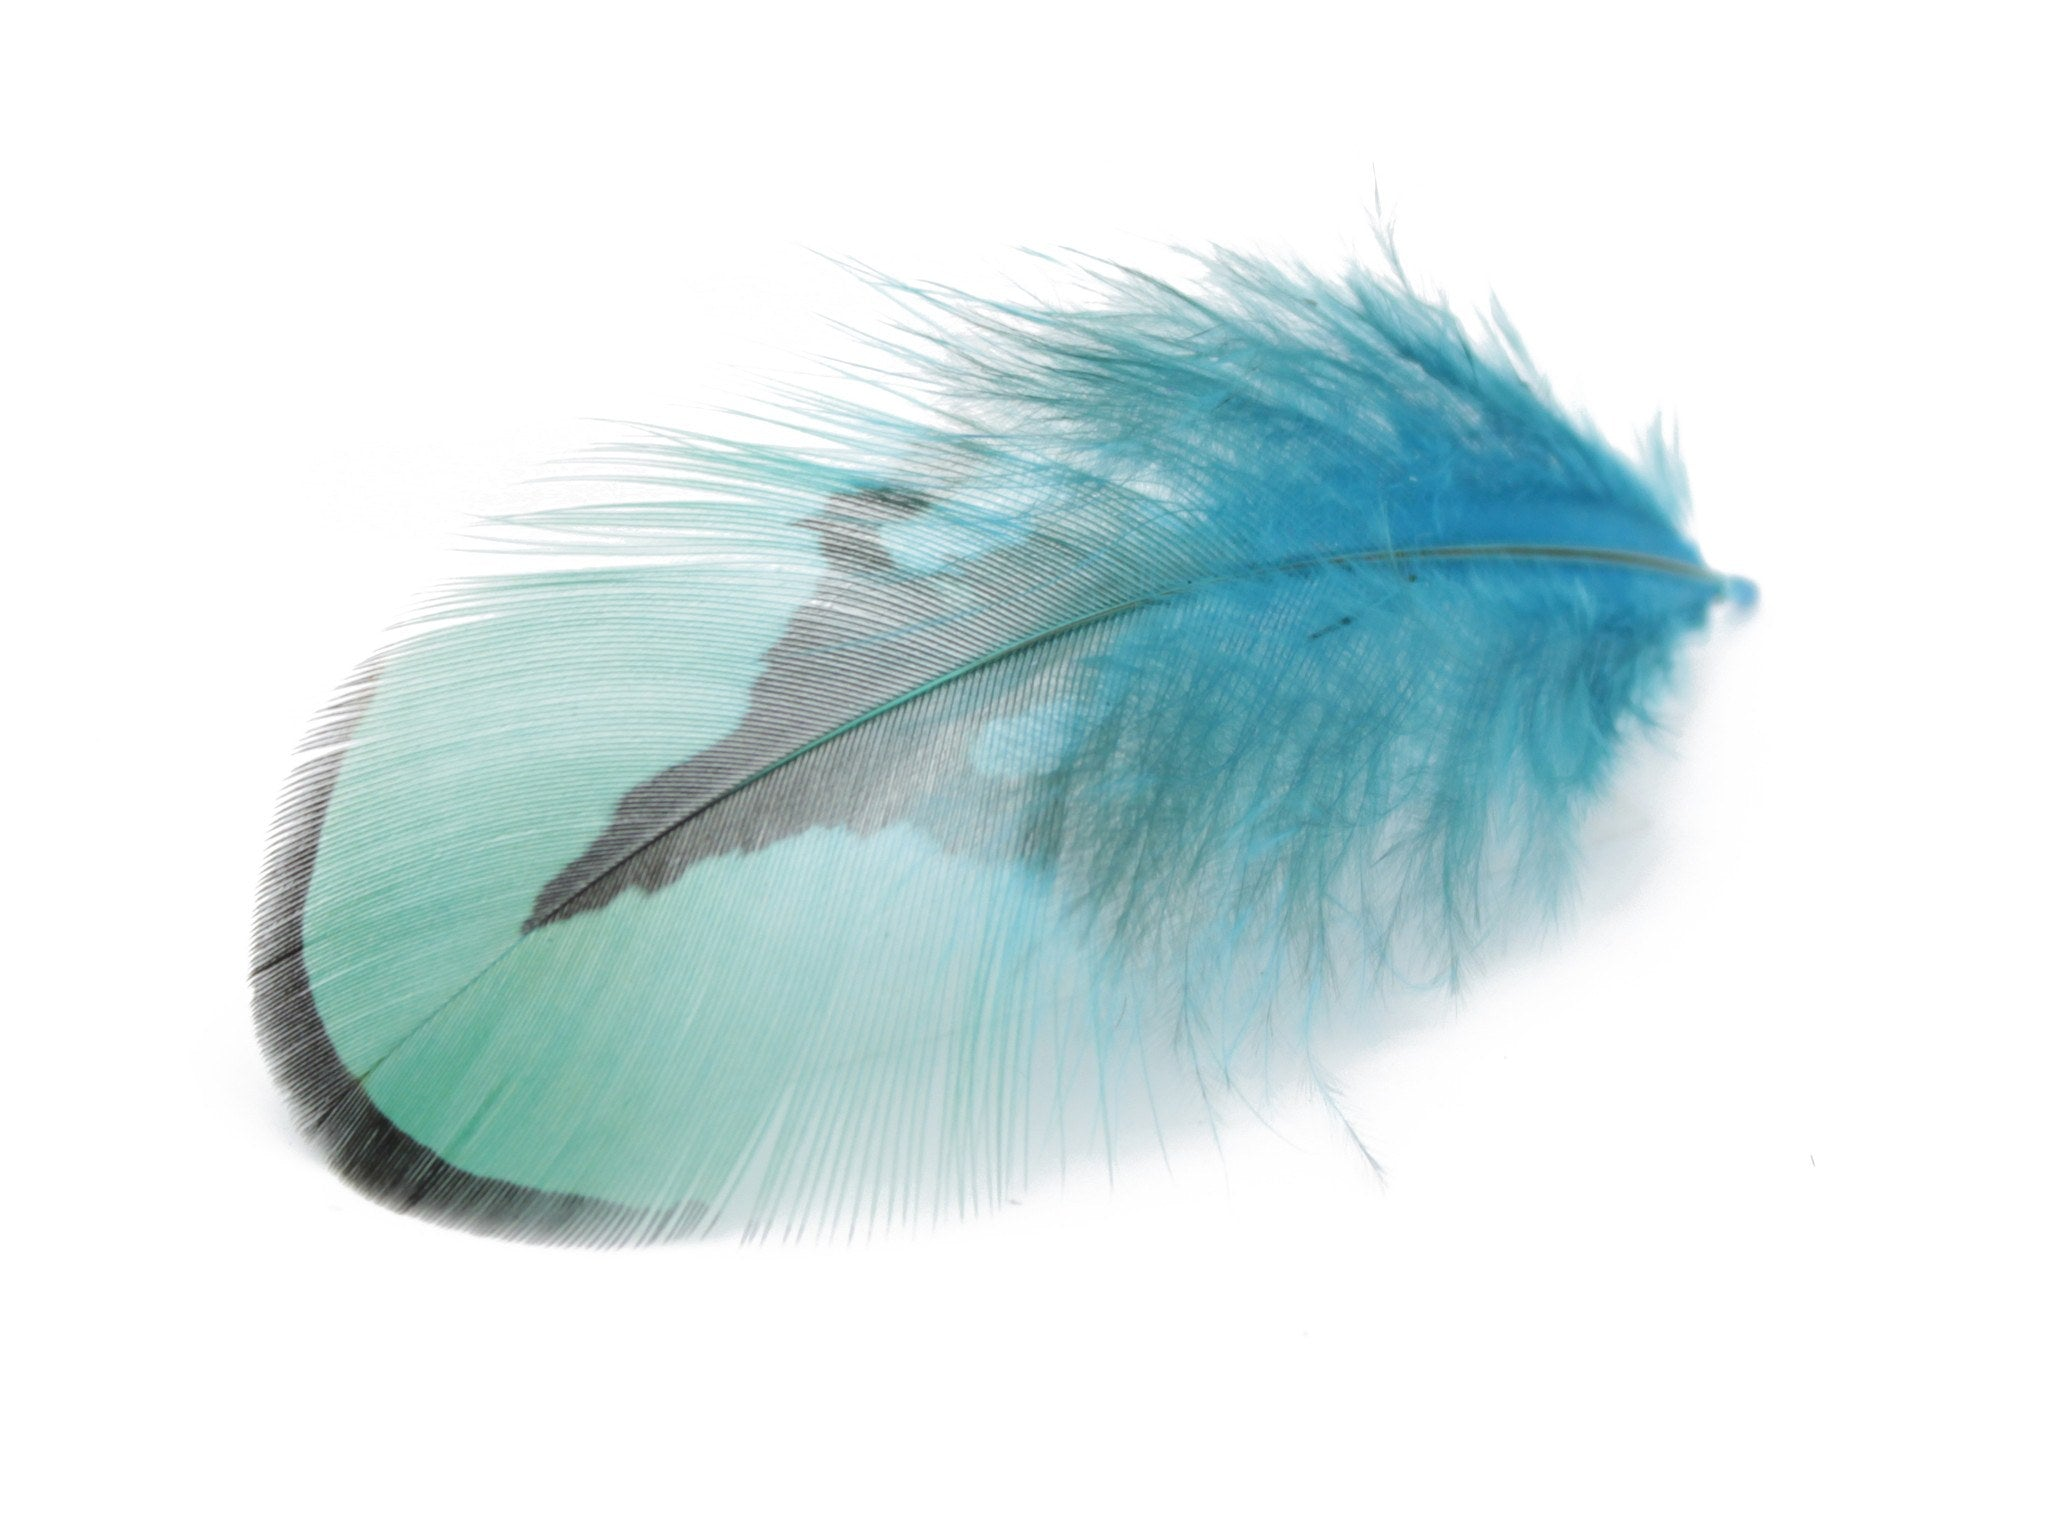 How to clean pheasant feathers - Reeves Venery Pheasant Blue Plumage Feathers